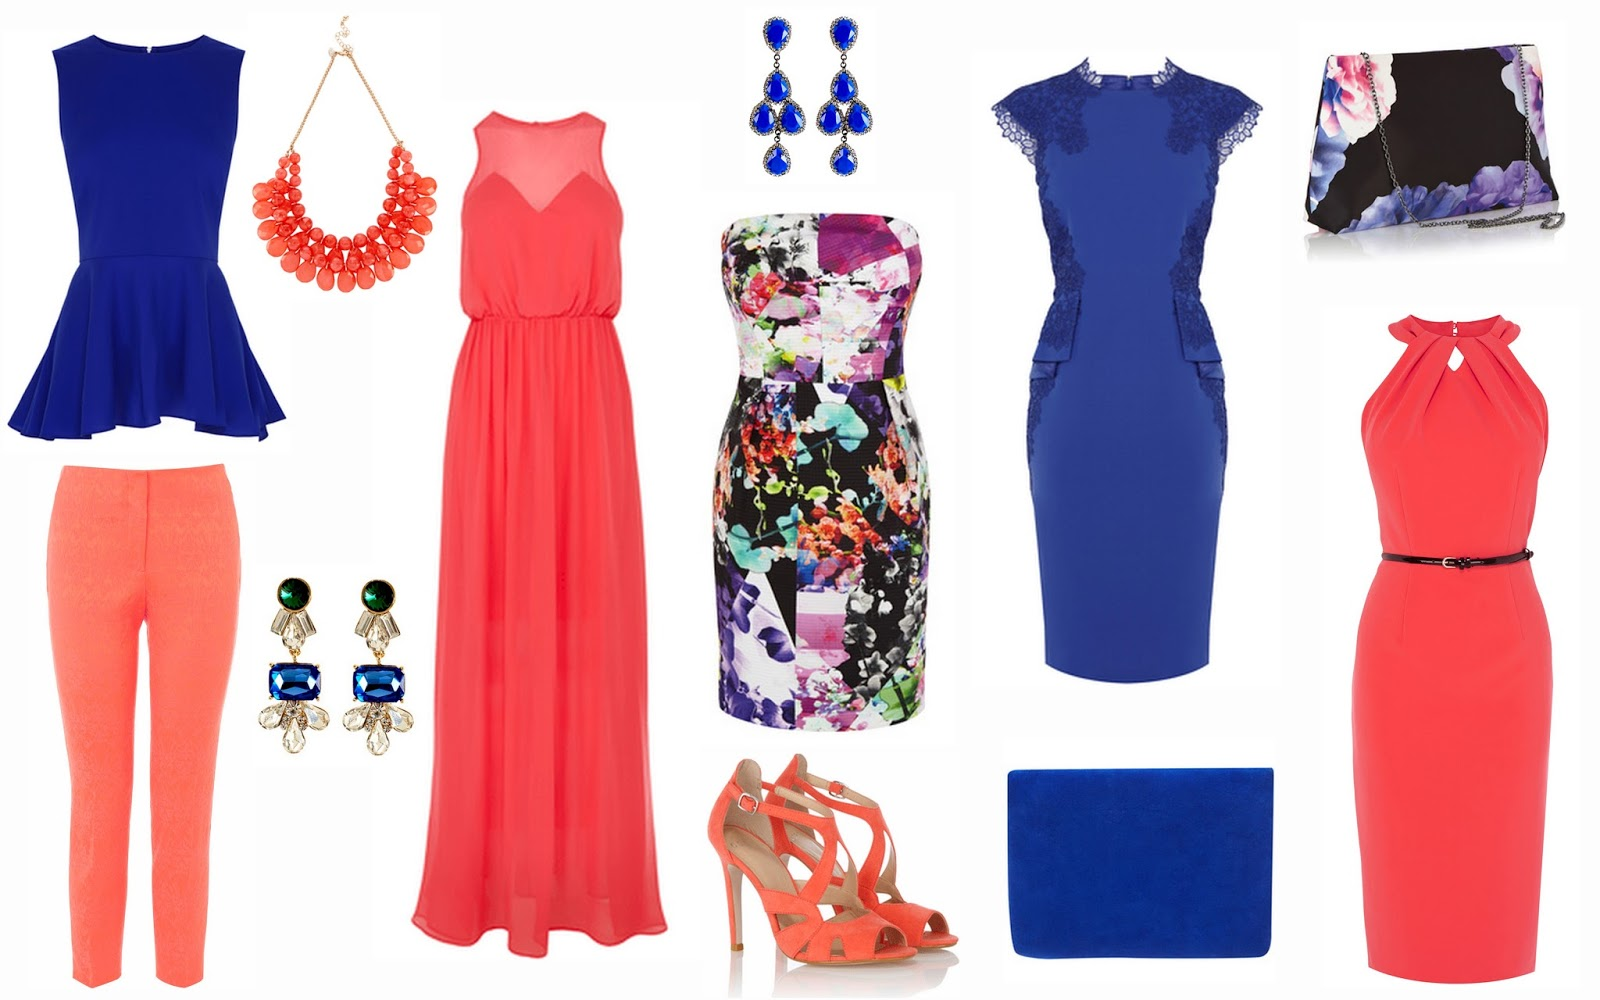 wedding guest dresses summer summer wedding guest dress wedding guest dress herona coral cropped jacquard trousers 45 coral necklace 20 jango drop earrings 18 marcha coral maxi dress 95 groucho blue earrings 12